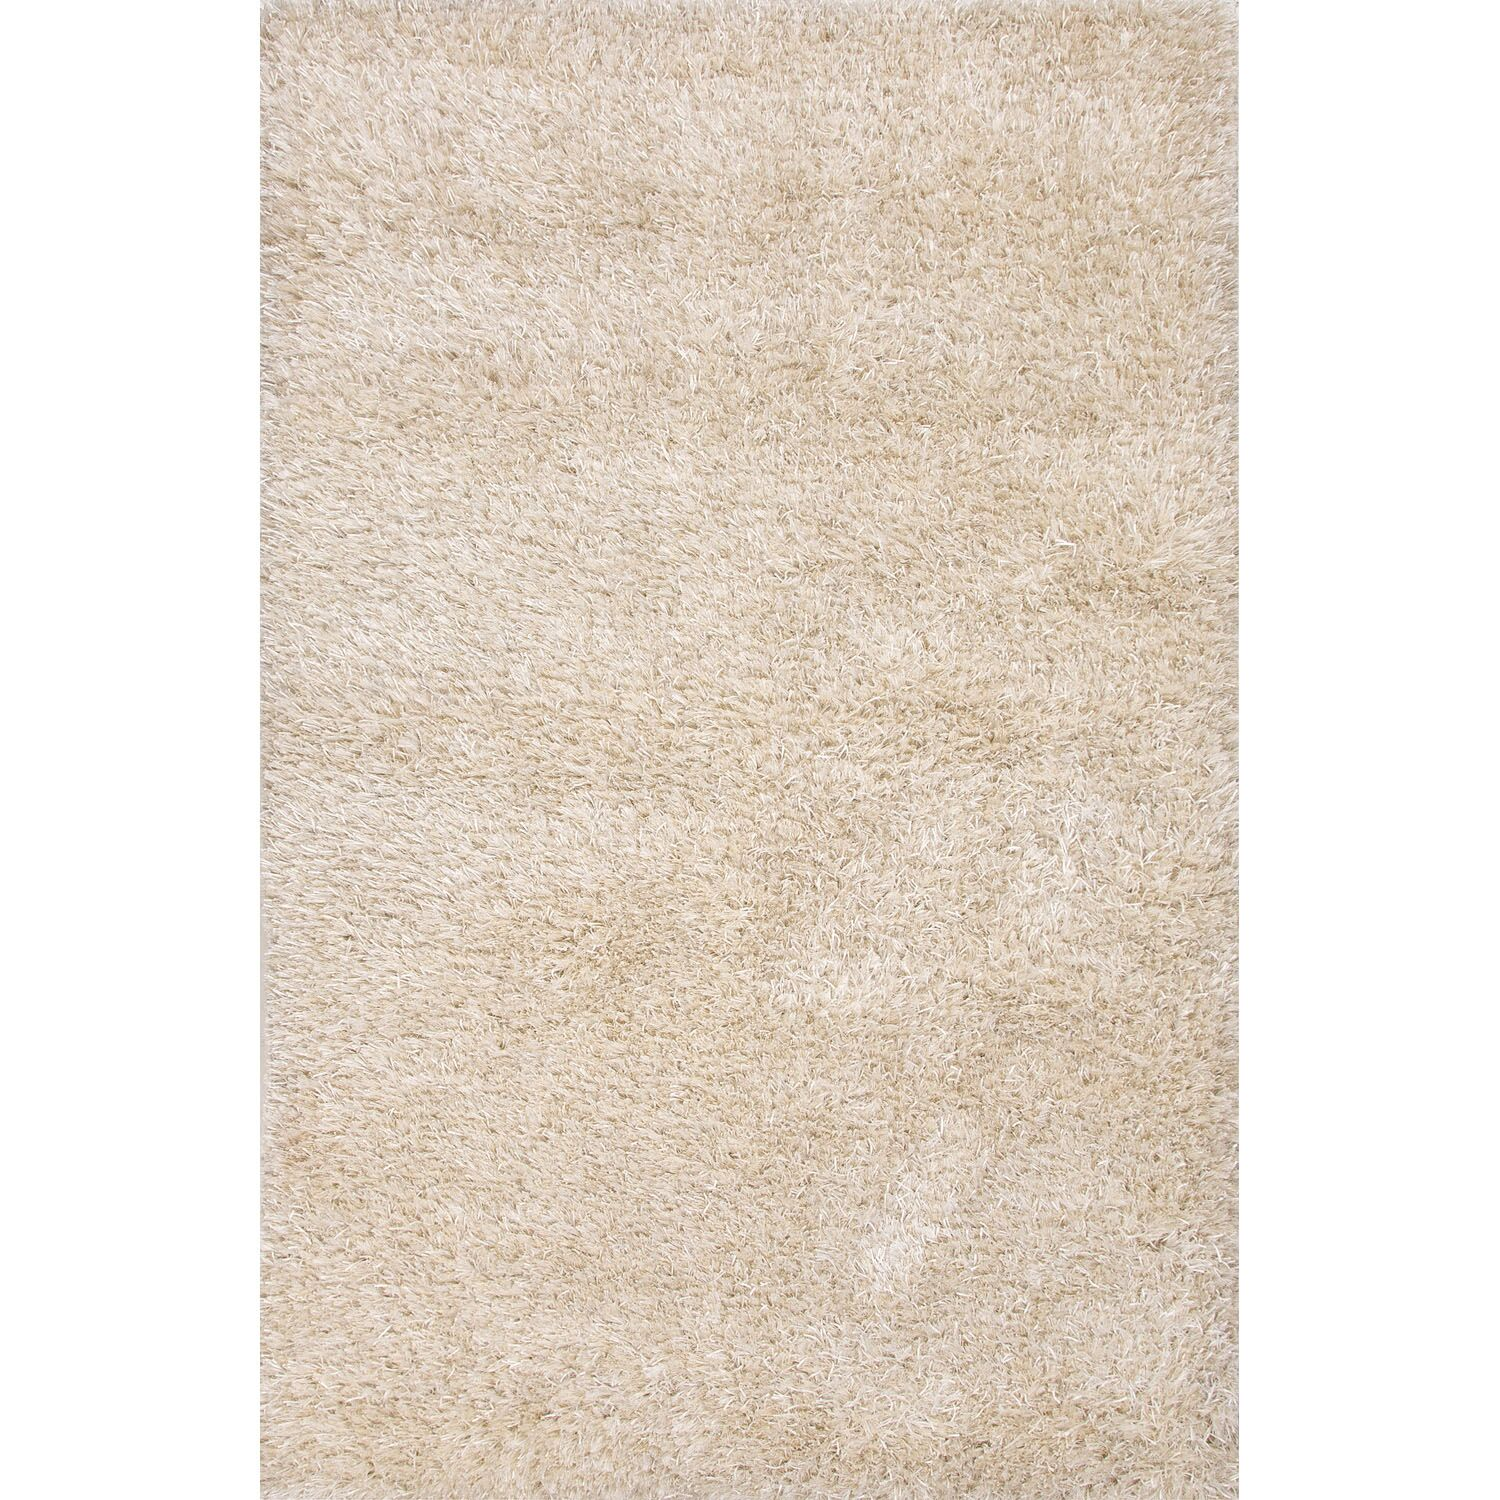 Burnell Beige Solid Area Rug Rug Size: Rectangle 2' x 3'